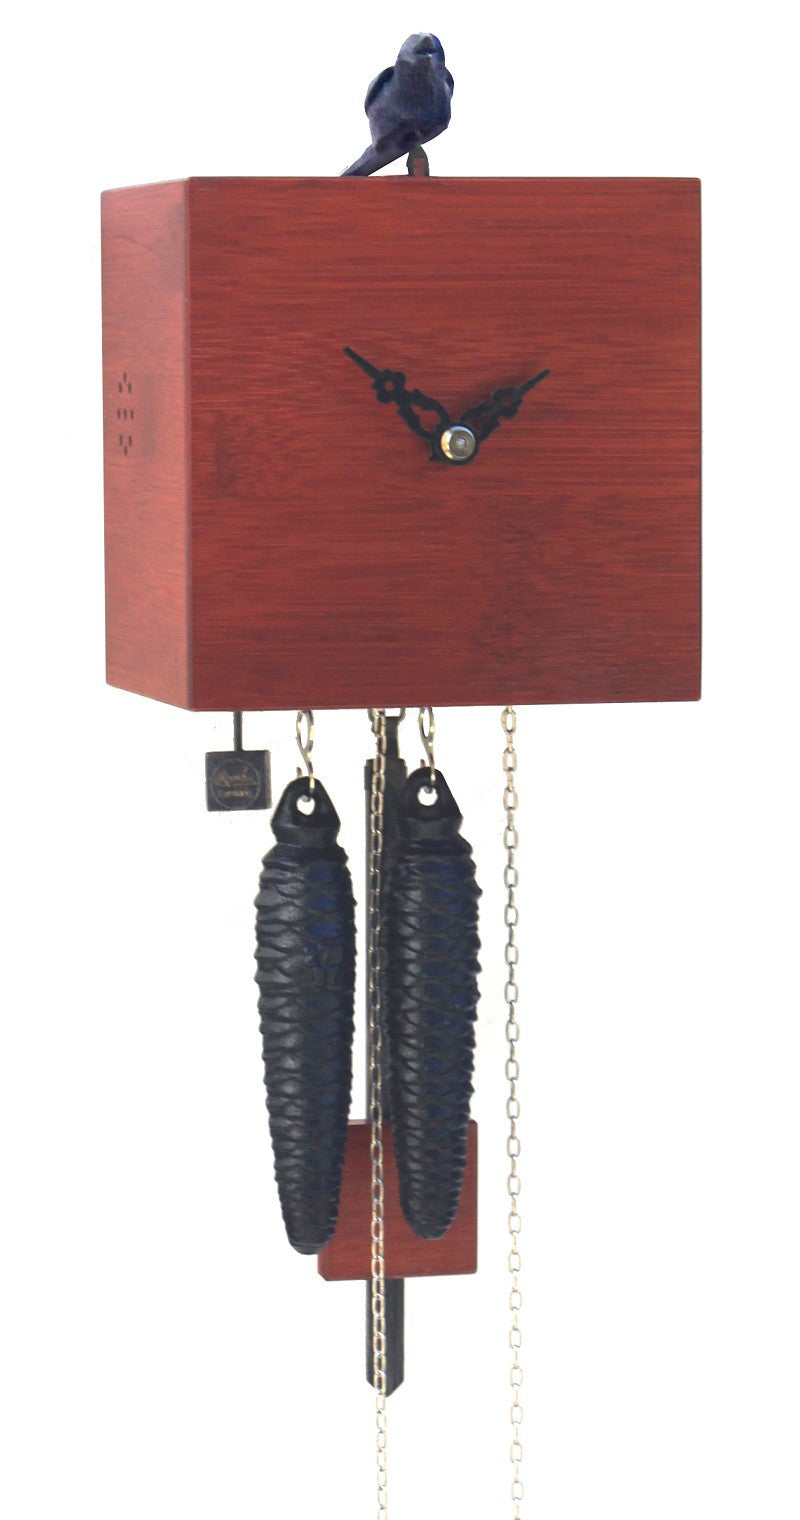 Modern Bamboo Cuckoo Clock in Red 1 Day Movement - Cuckoo Clock Meister